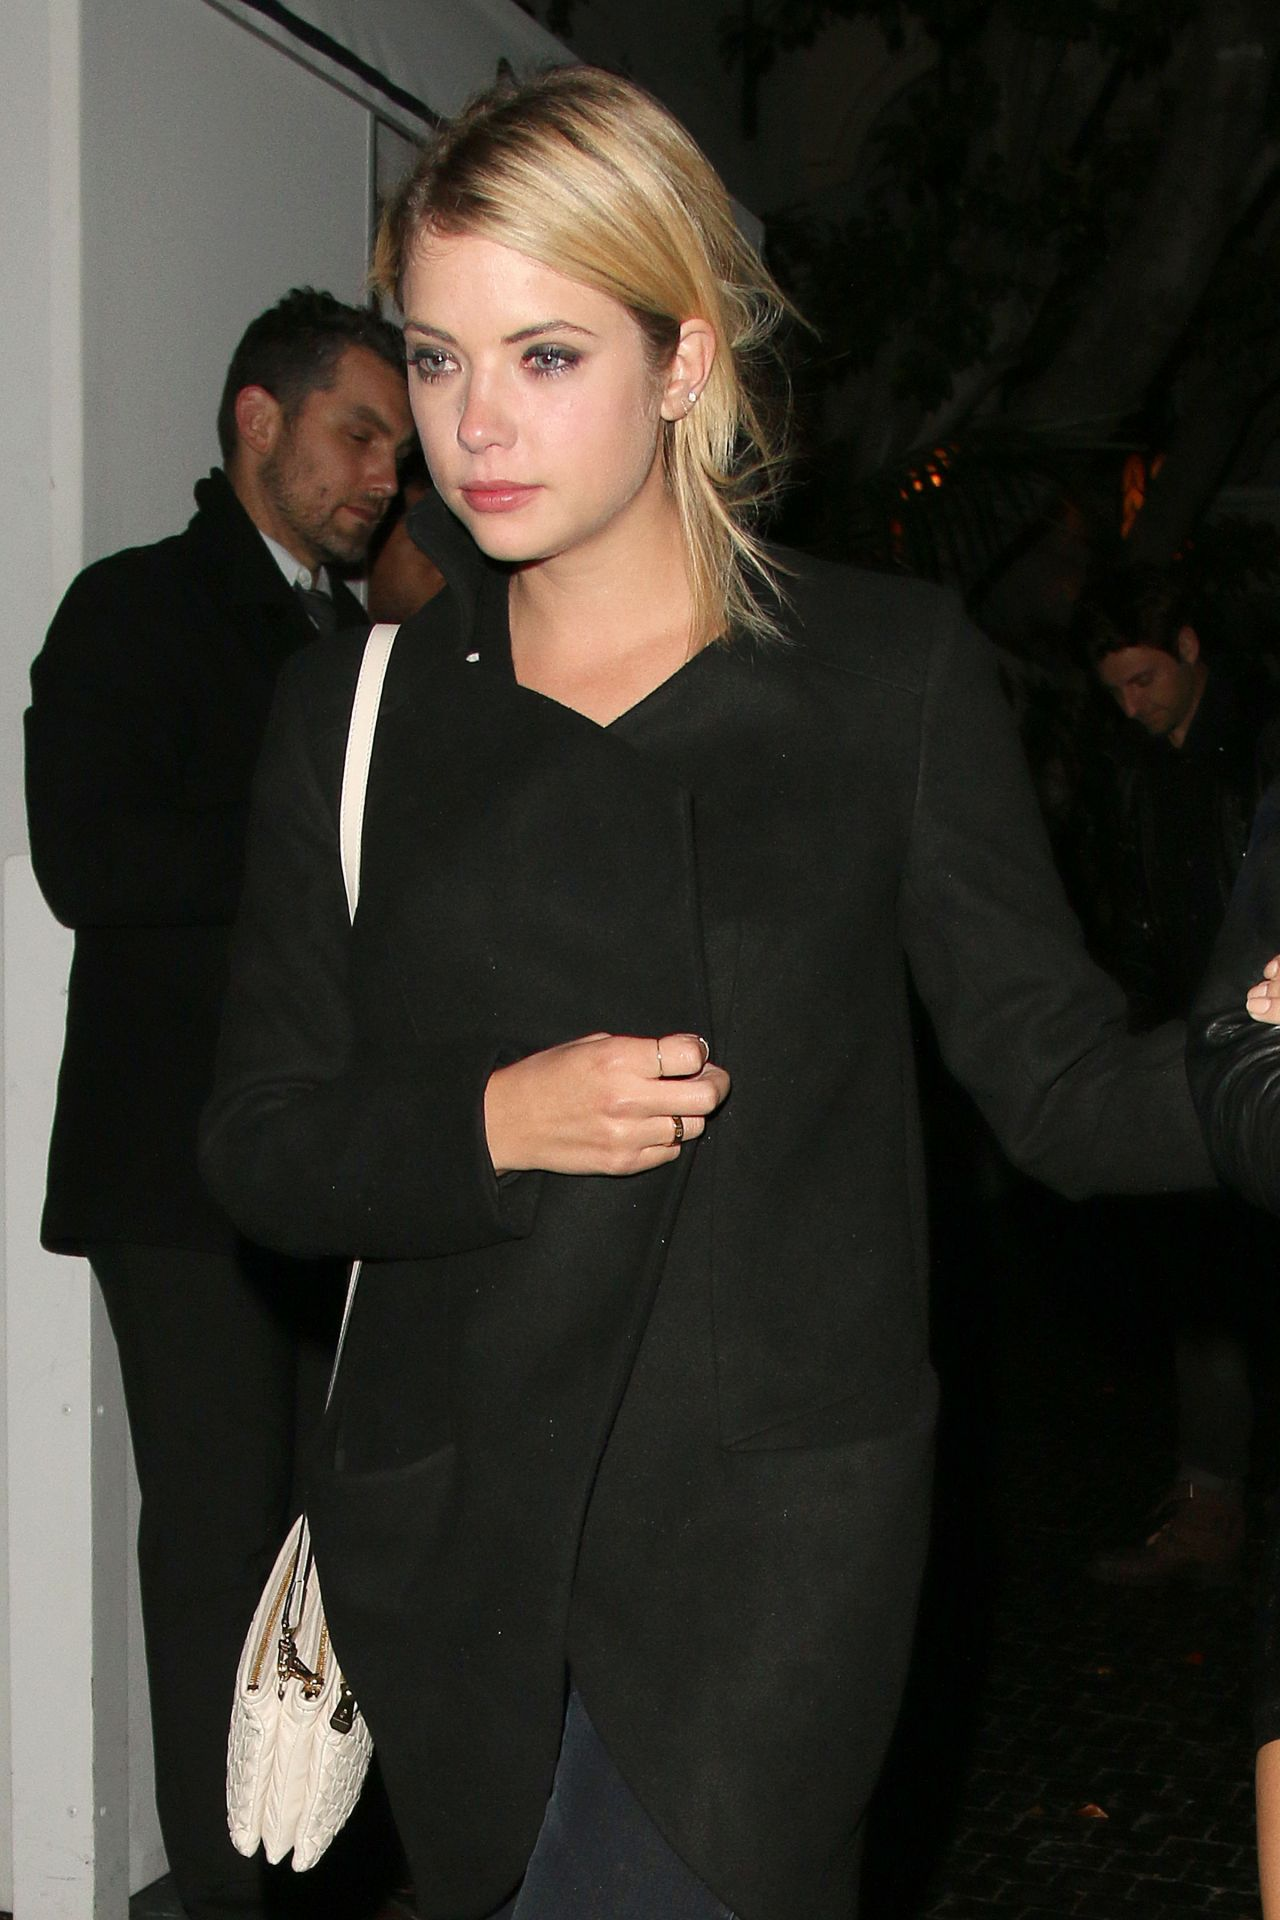 Ashley Benson Night out Style - Leaving Chateau Marmont in West Hollywood - June 2014